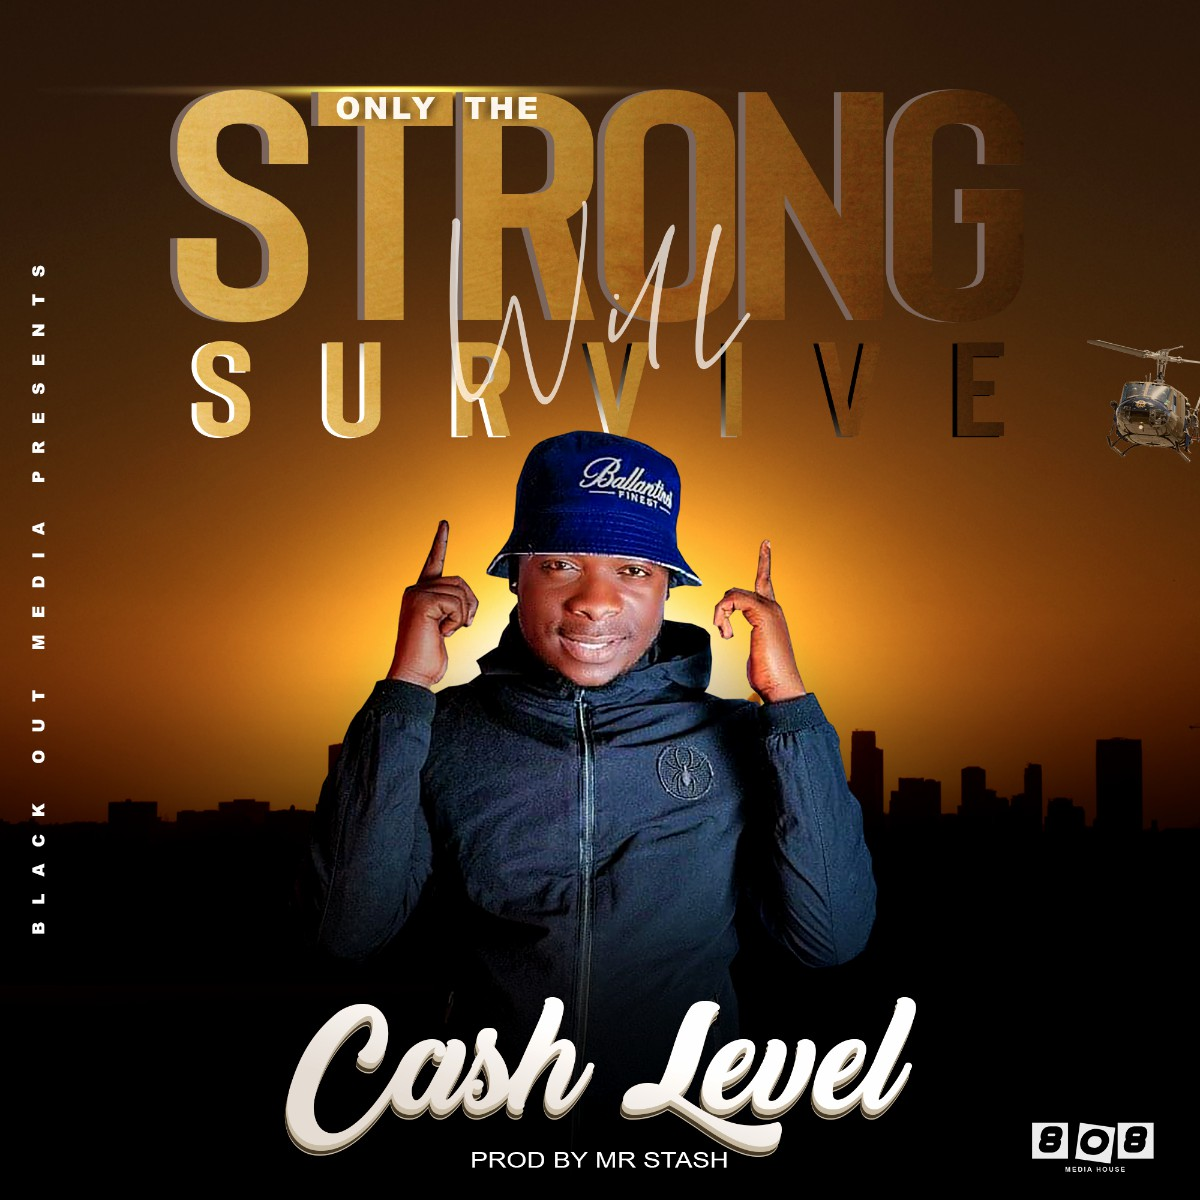 Cash Level - Only The Strong Will Survive